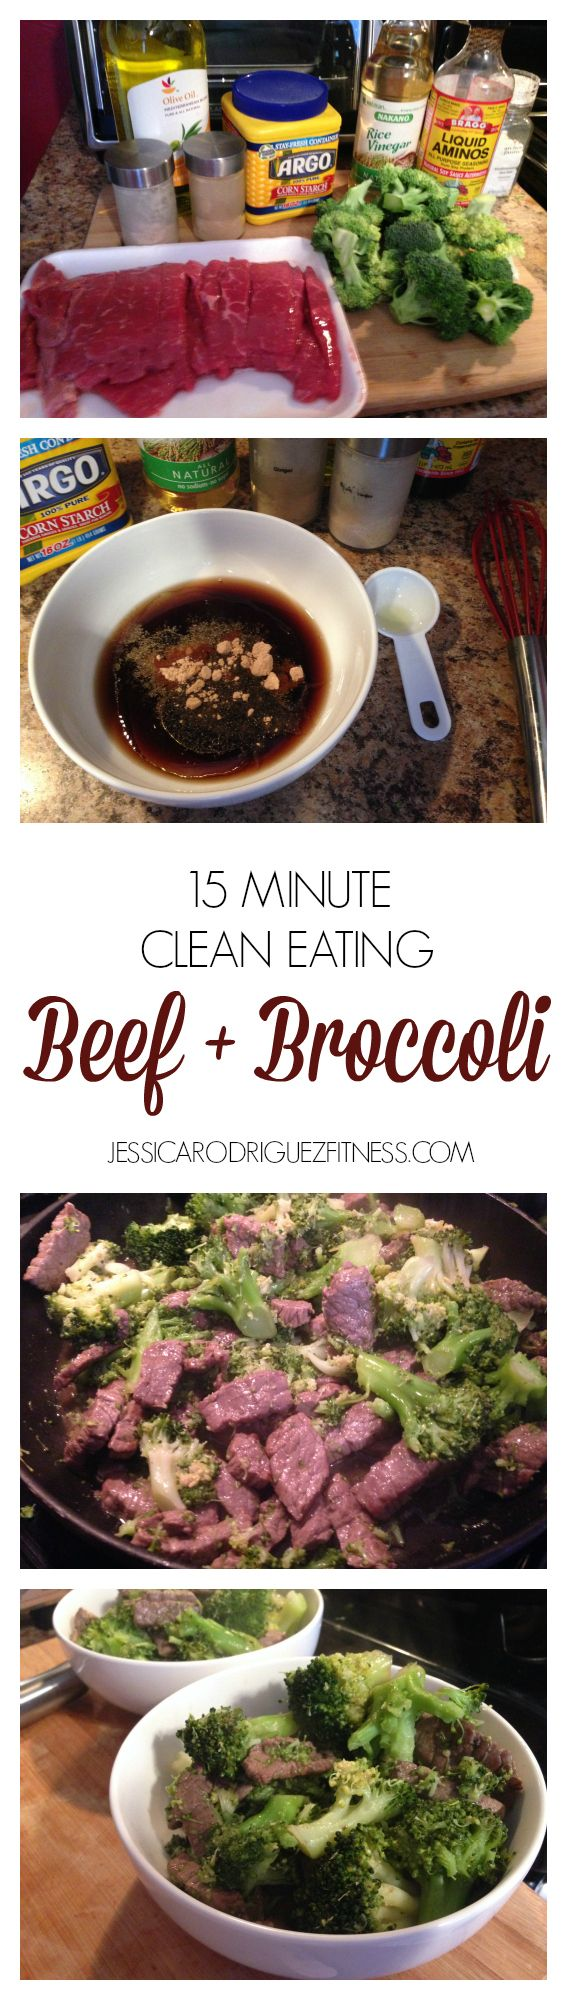 15 Minute Clean Eating Asian Beef and Broccoli | http://jessicarodriguezfitness.com